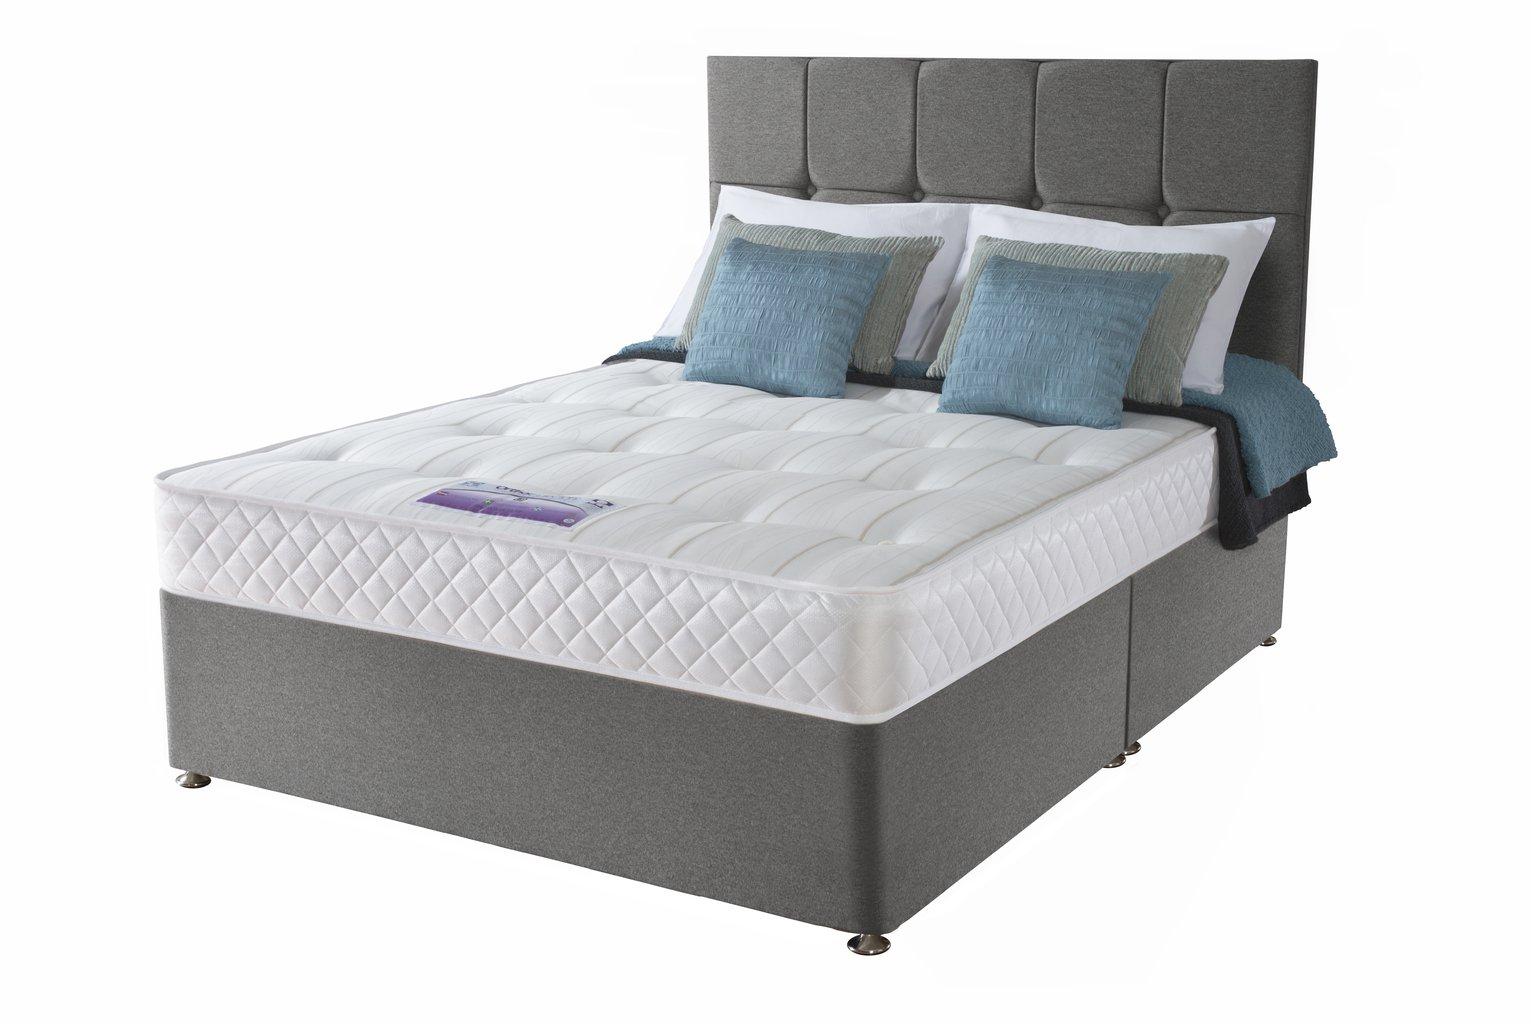 Sealy Posturepedic Firm Ortho Divan Bed - Double